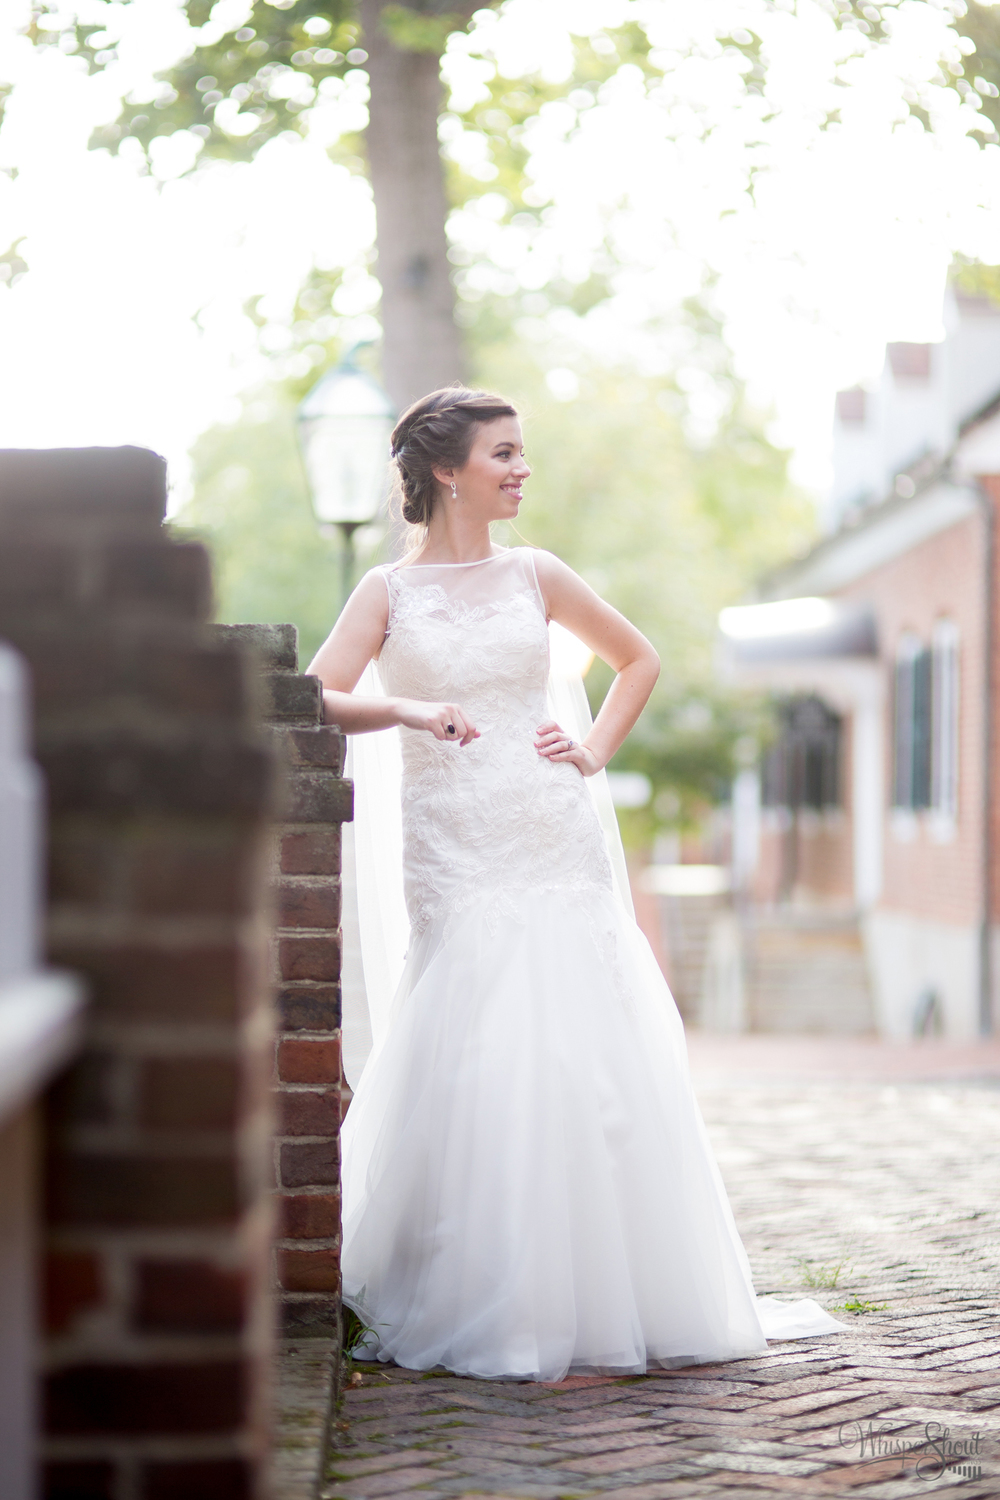 Bride in boatneck wedding gown at Old Salem. Image by WhisperShout Weddings, a TriadWeddings photographer.